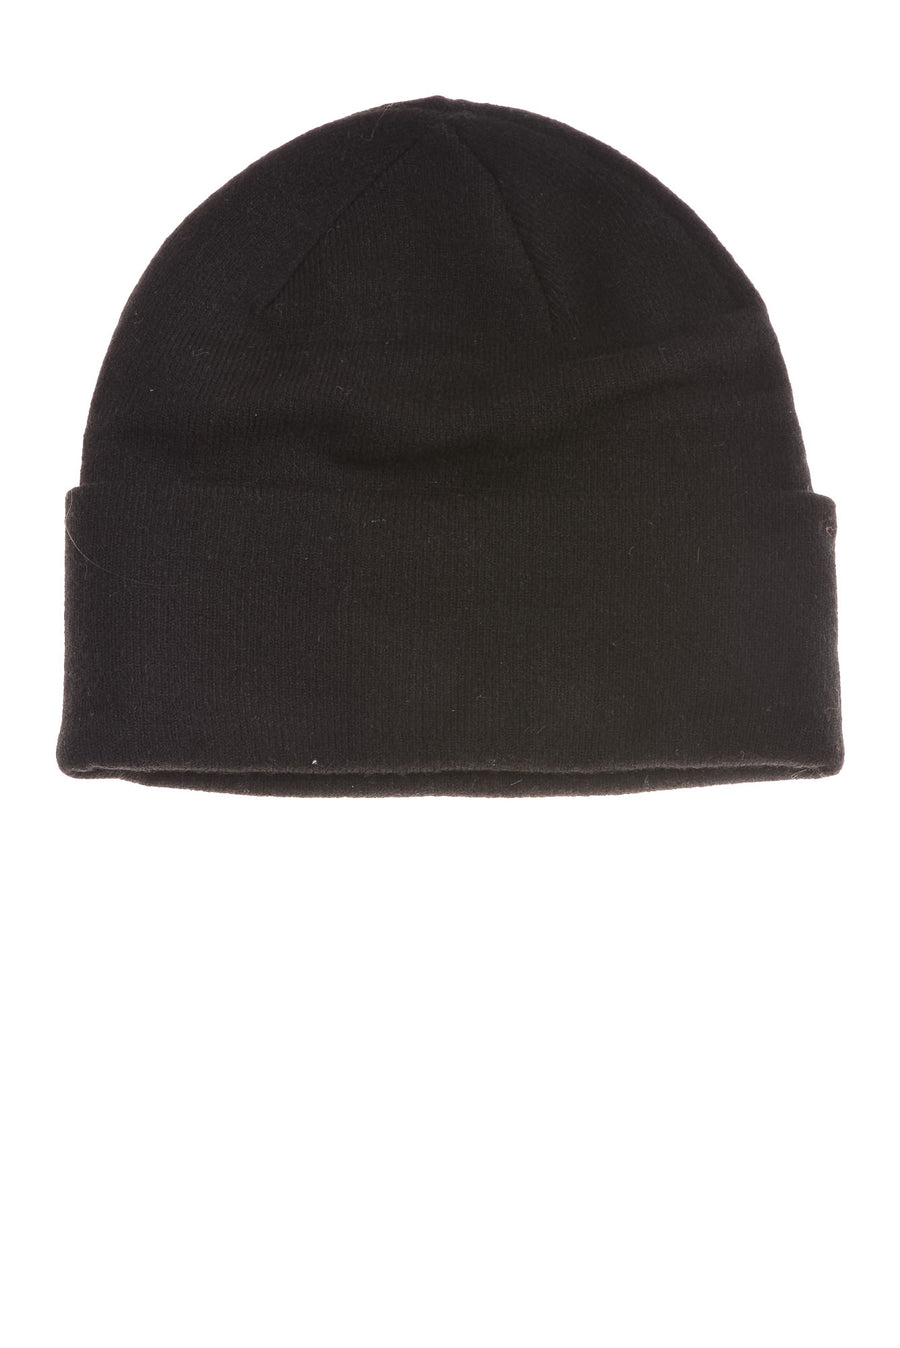 USED H&M Women's Hat One Size Black